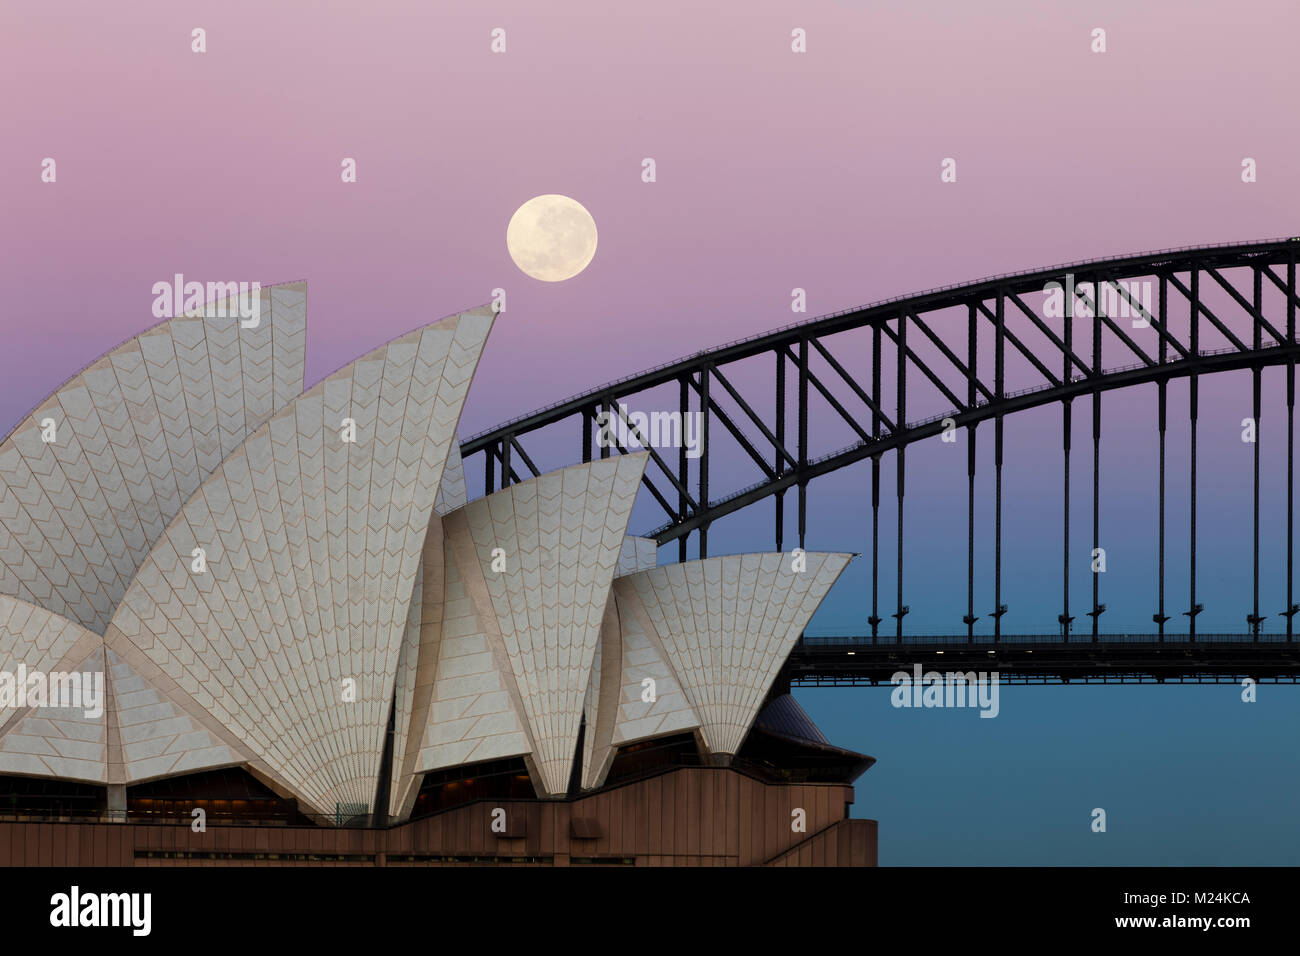 A full moon hovers over the Sydney Harbour Bridge and Opera House. The sky glows pink and blue as the sunrises. - Stock Image